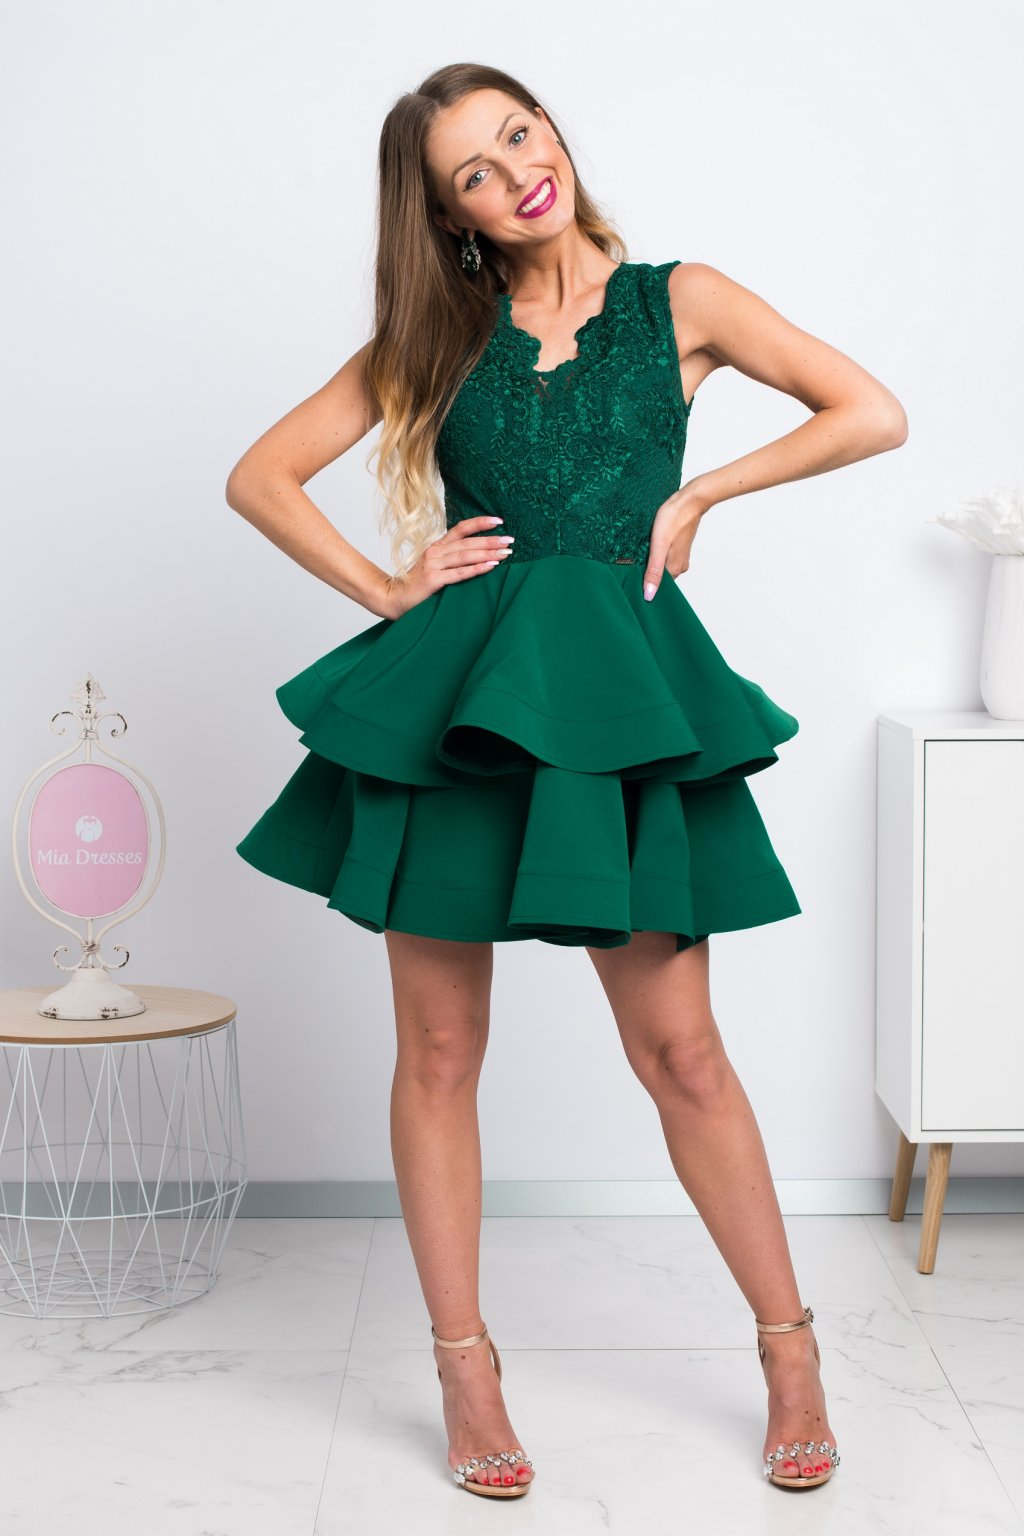 Green a-line mini dress